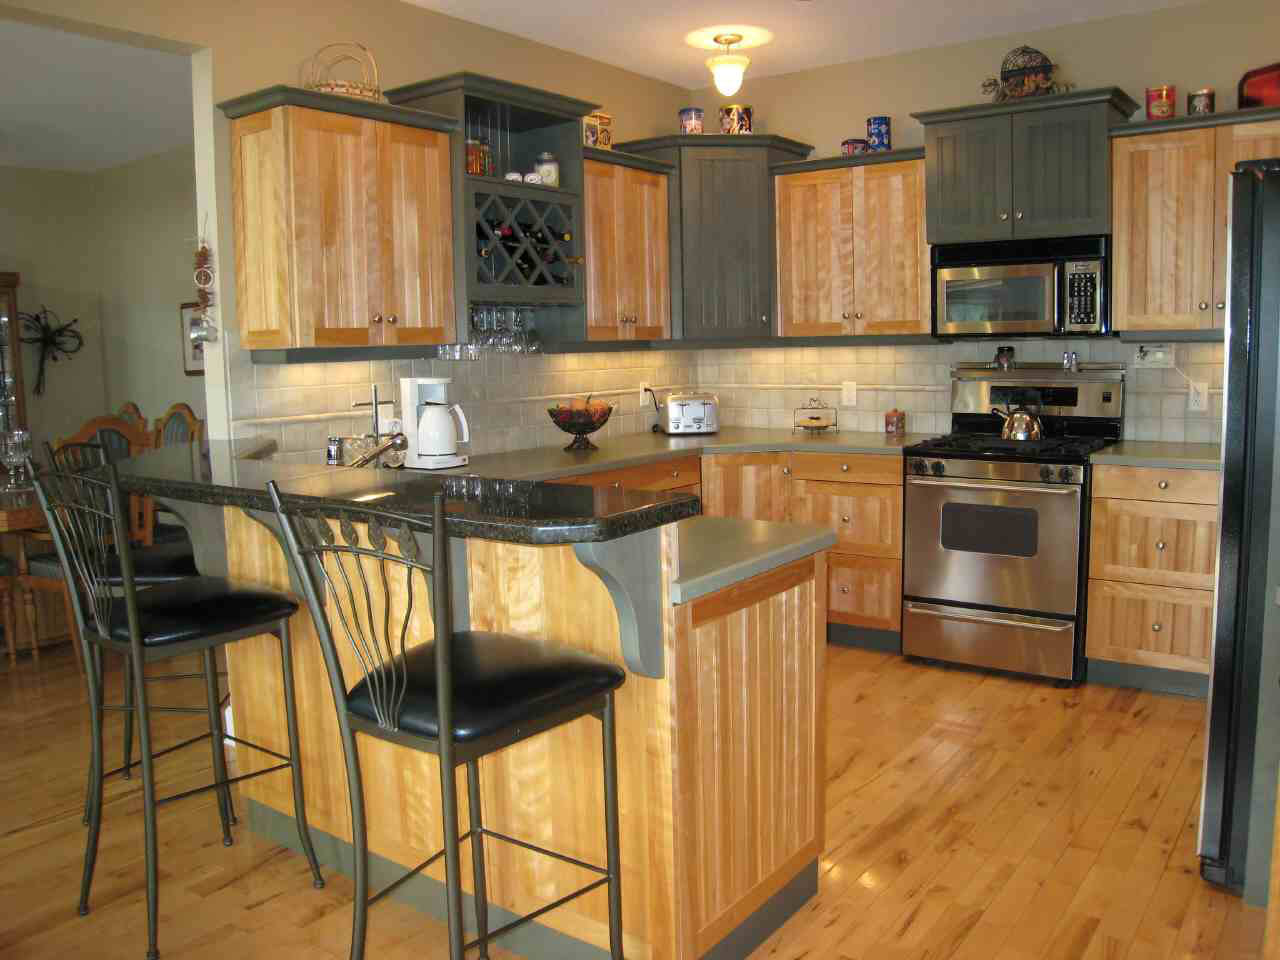 Kitchen counter chairs Photo - 3